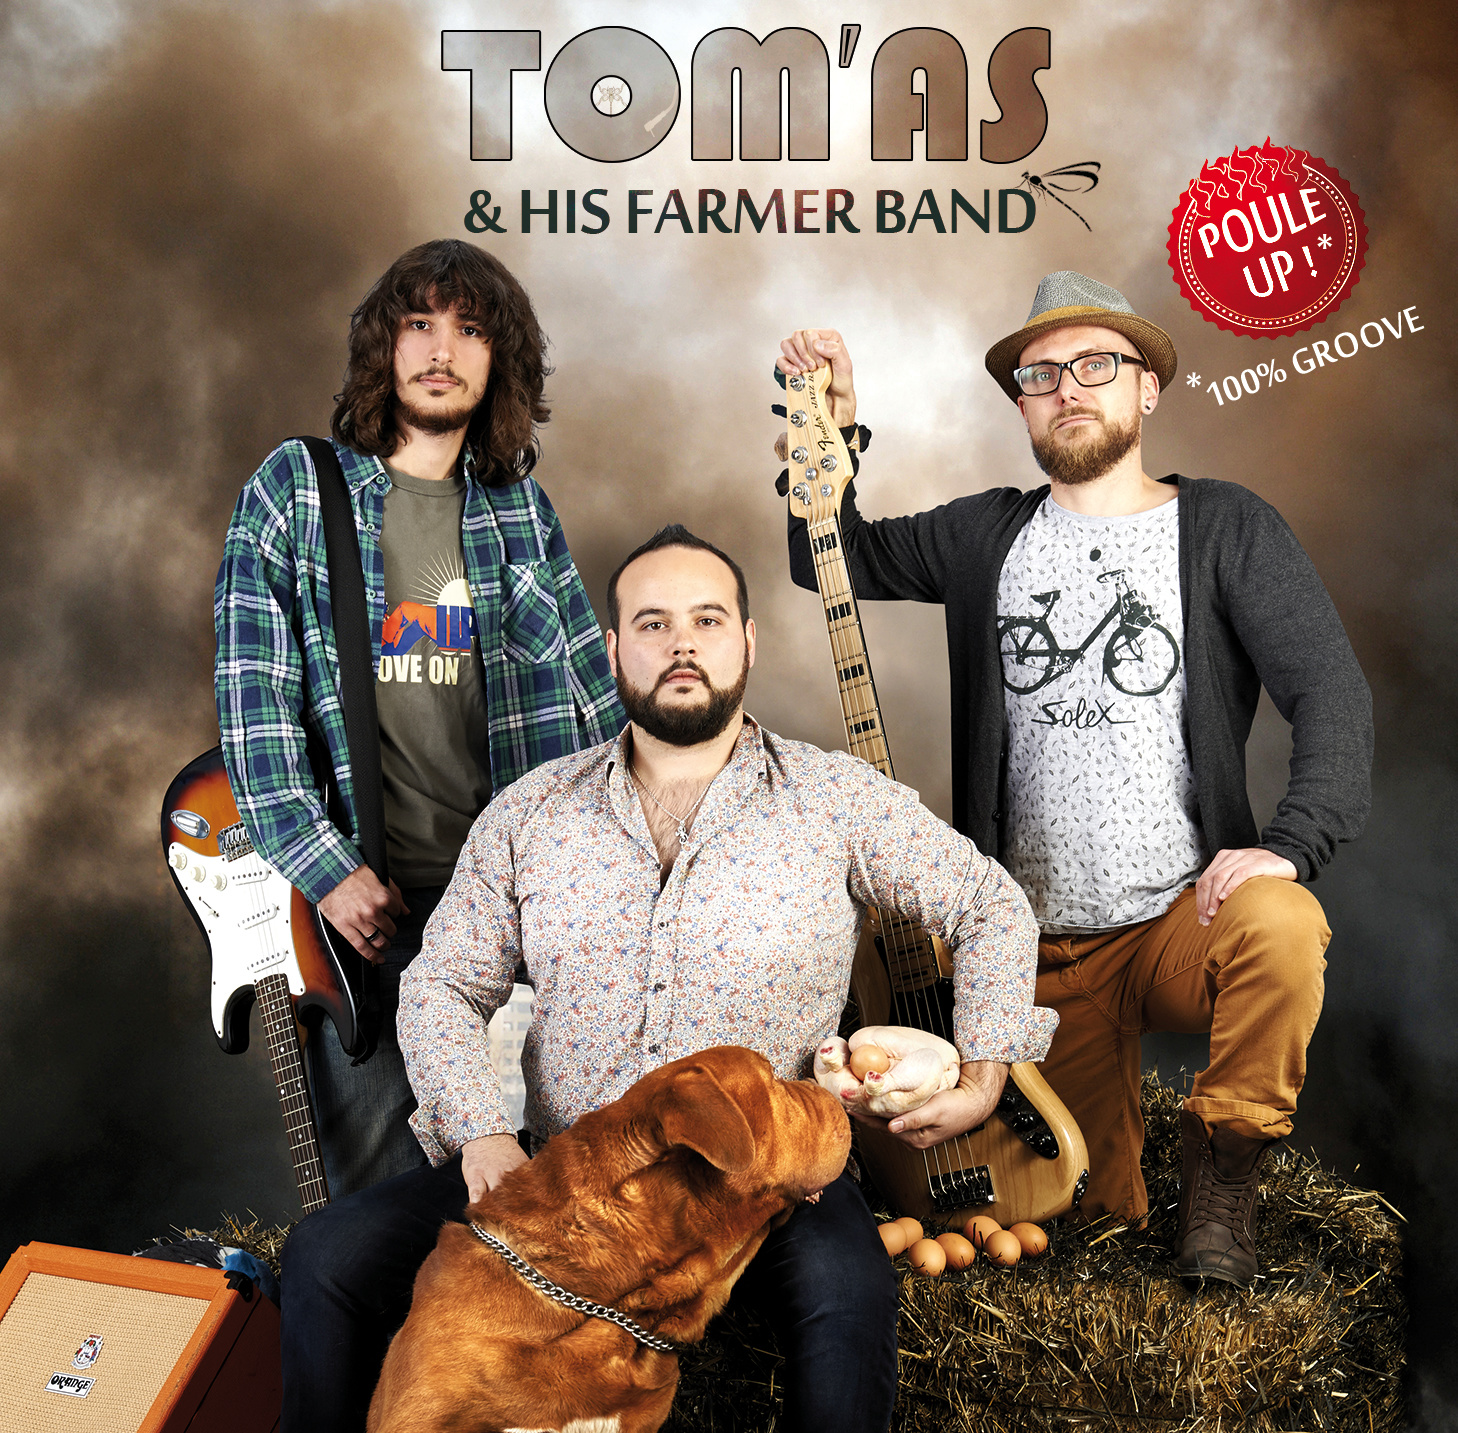 Tom'As & His Farmer Band ban - Poule - Up